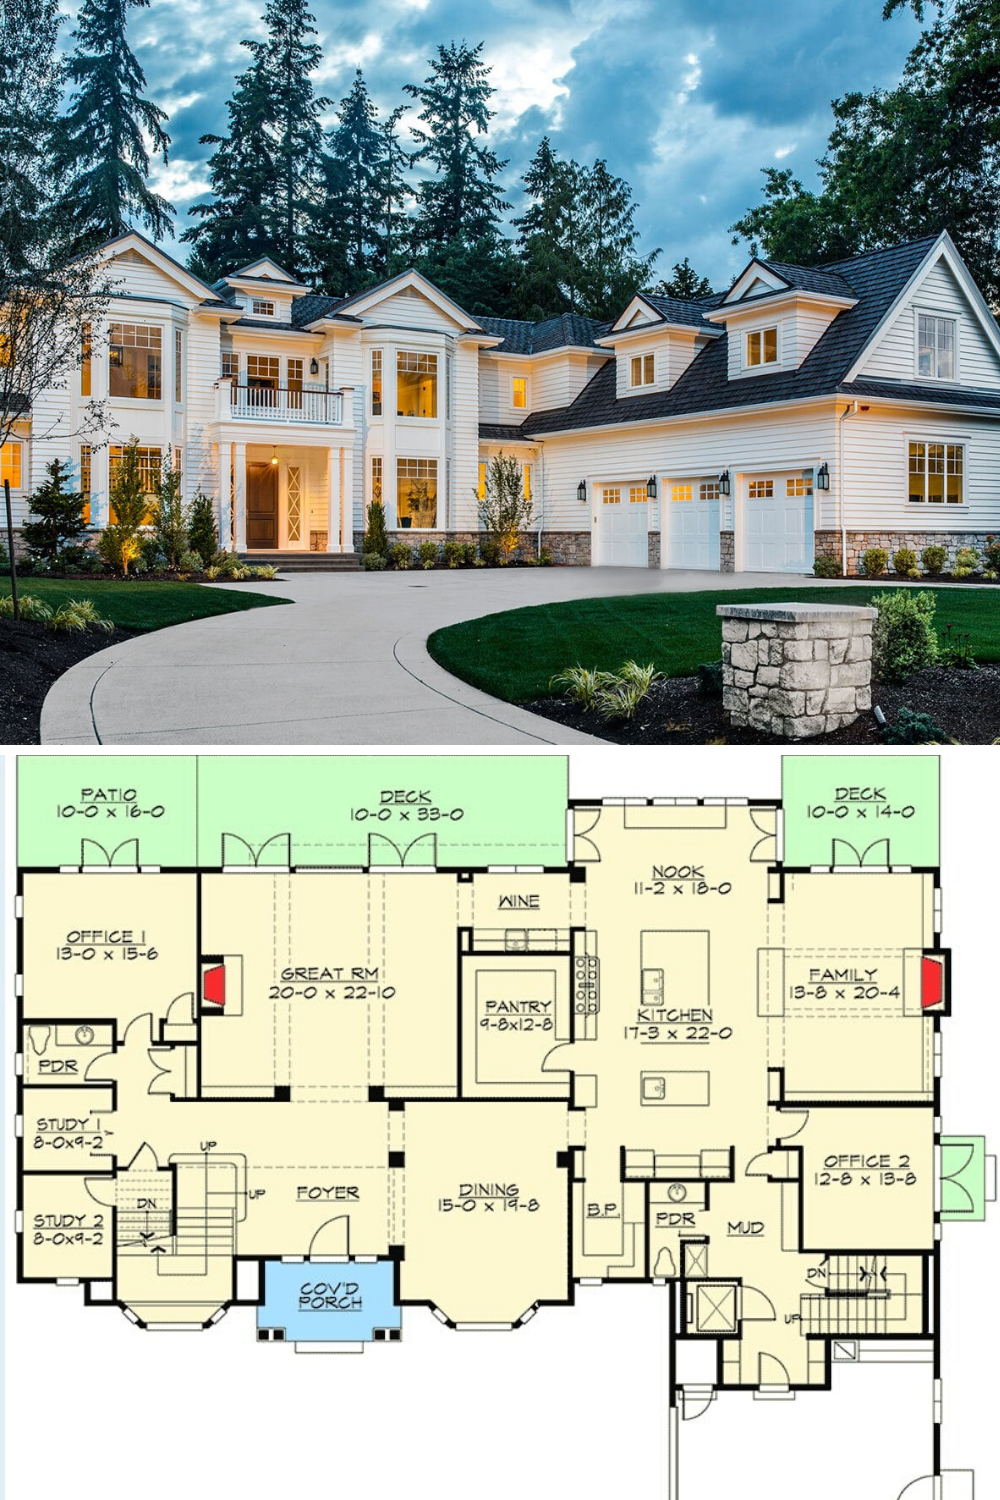 Two Story 5 Bedroom Traditional Colonial Home Floor Plan In 2020 Colonial House Plans Colonial House Family House Plans